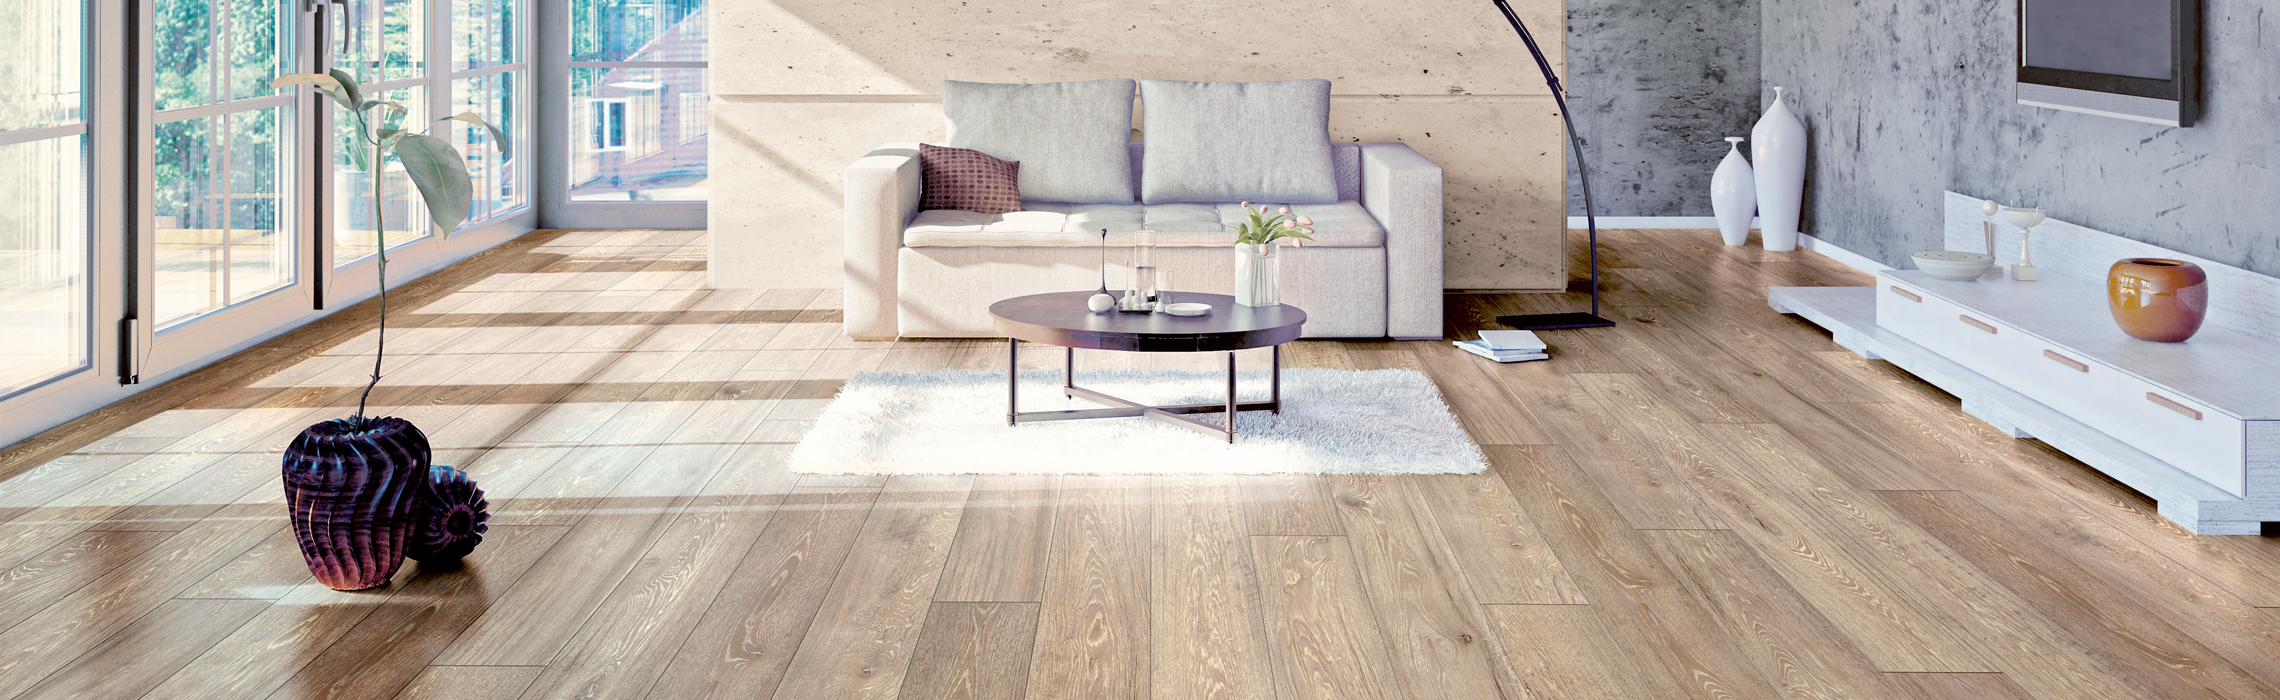 Discover appropriate and useful information regarding laminate flooring in the SWISS KRONO laminate advisor, including tips for maintenance and laying.